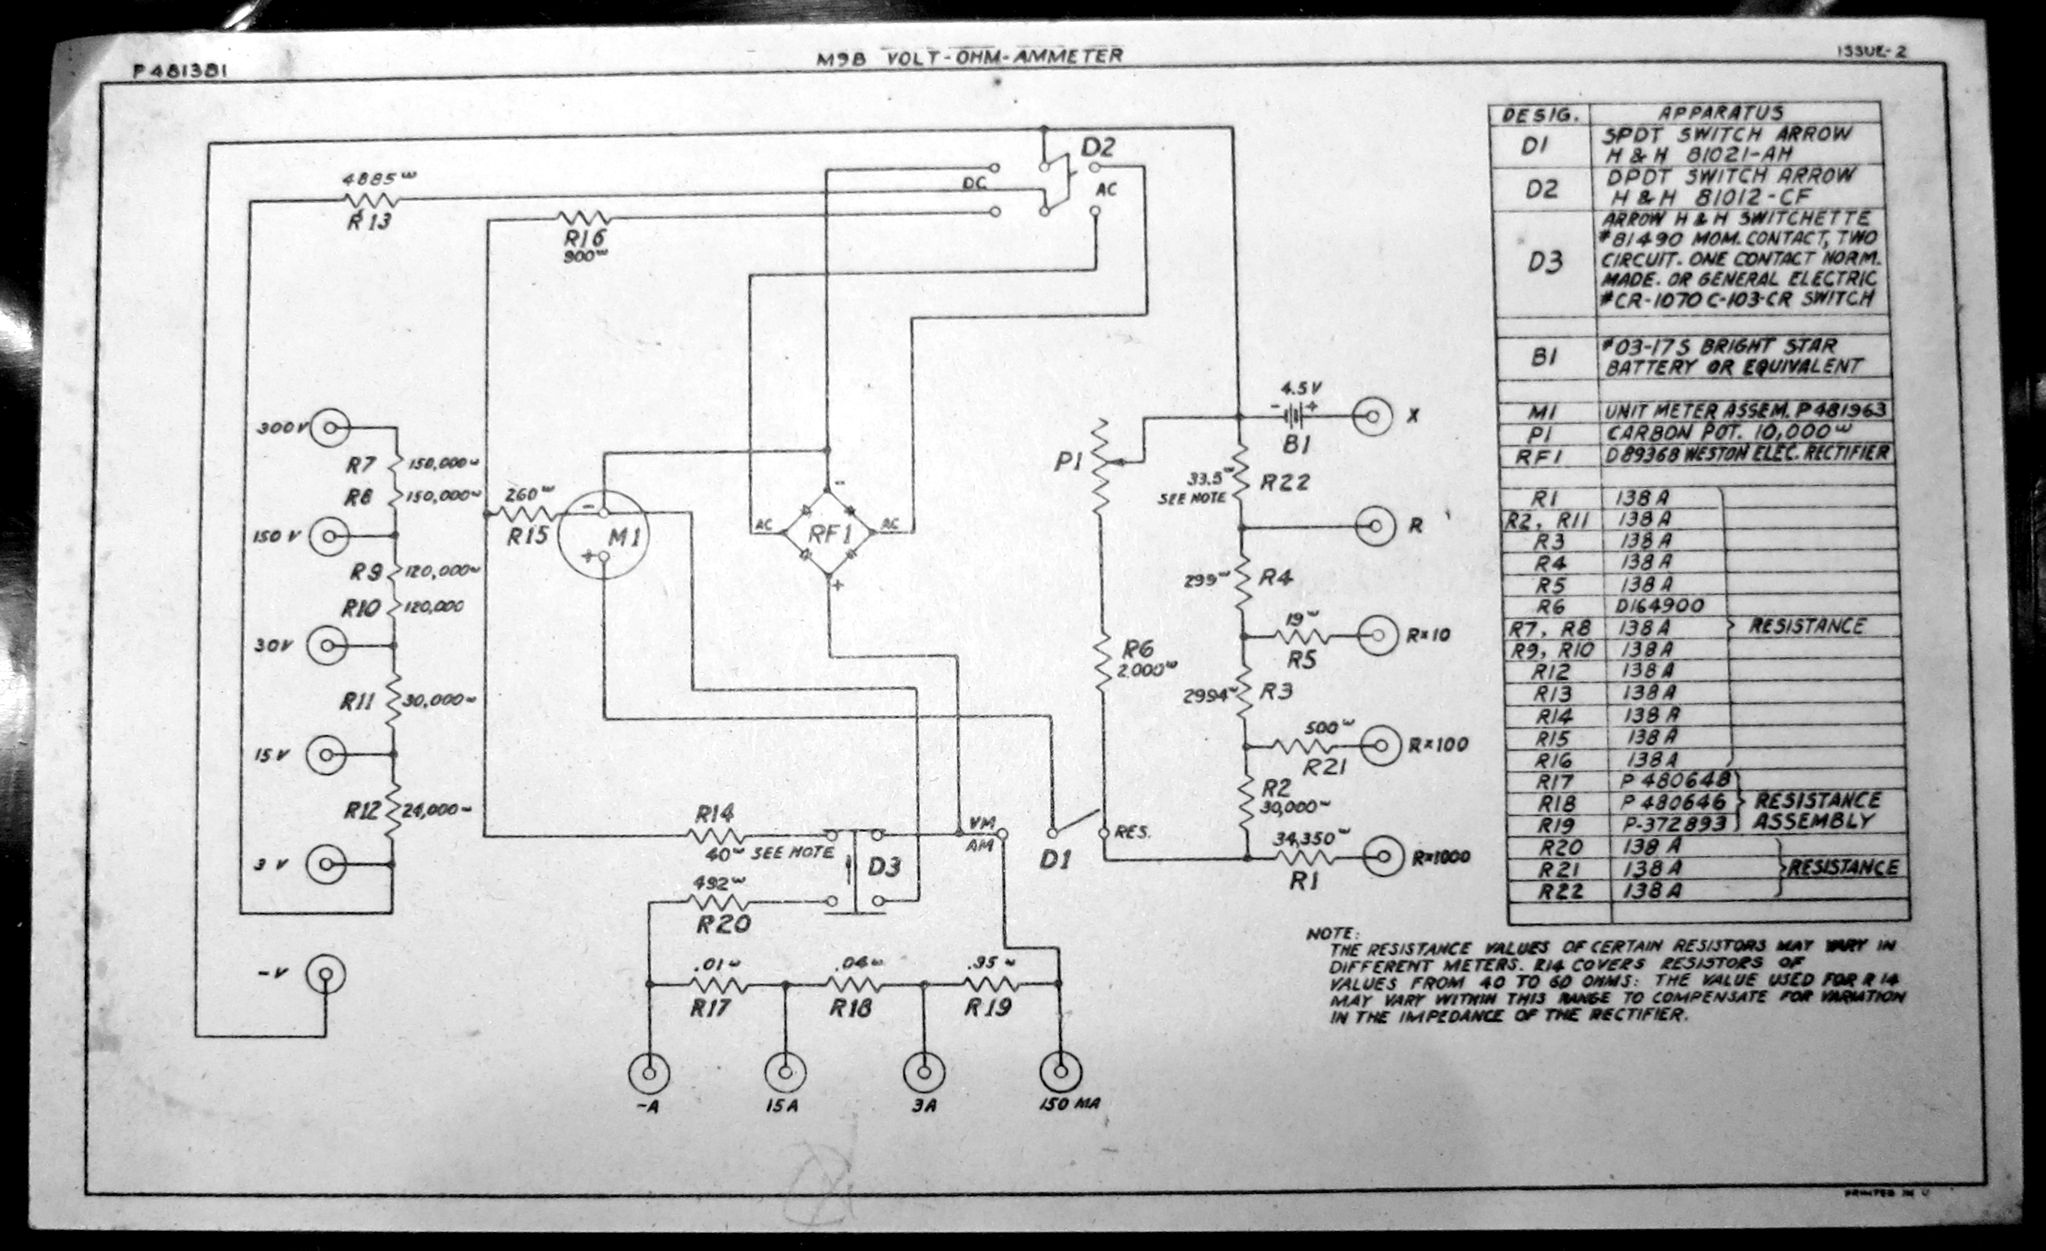 Western Electric D 166852 Volt Amp Ohm Meter 1940s Digital Wiring Diagram Get Free Image About